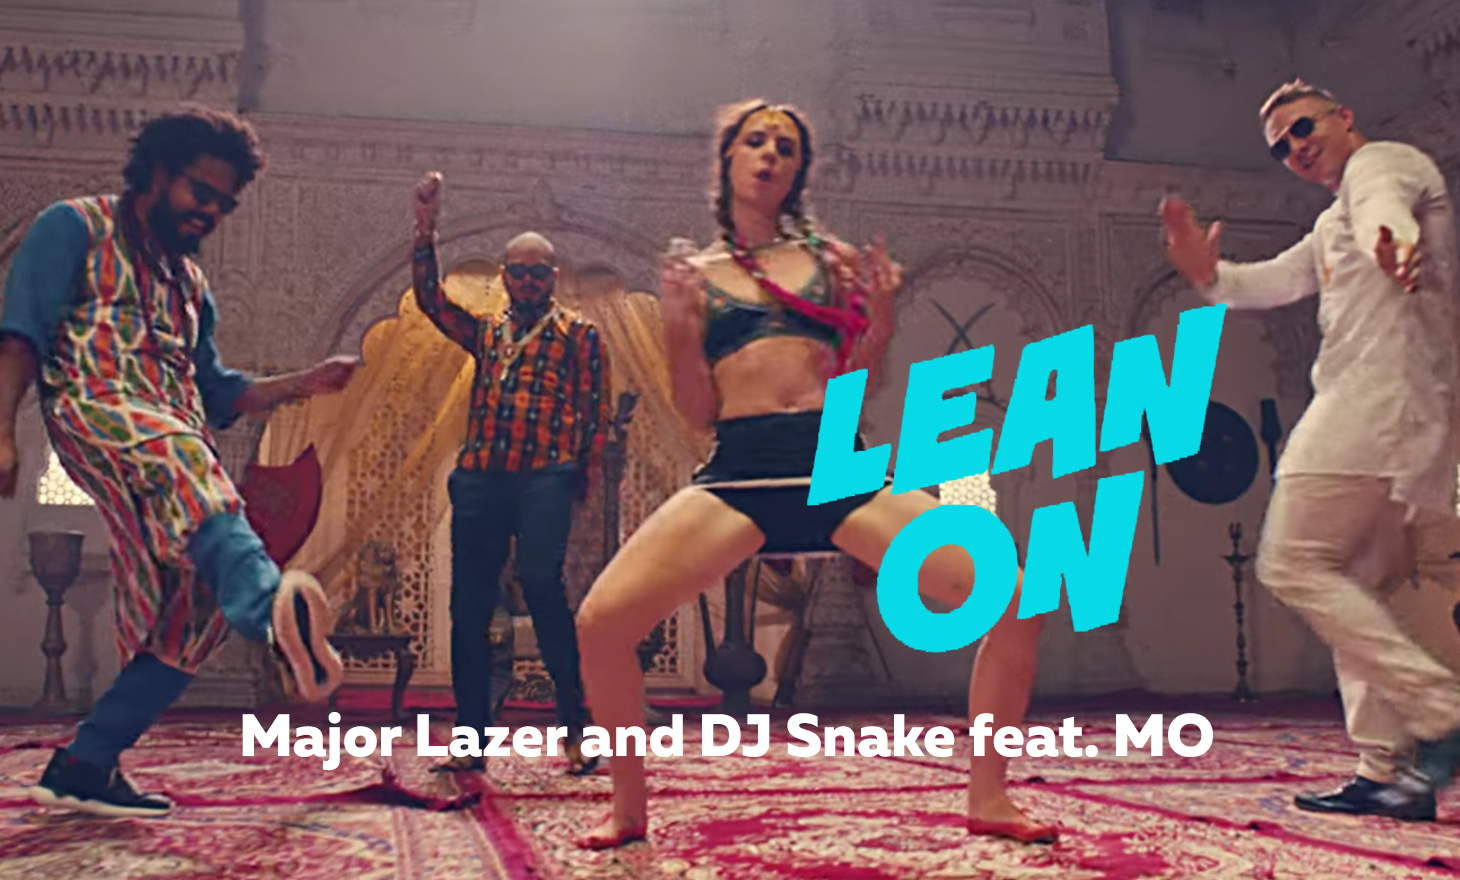 Lean On(リーン・オン):Major Lazer & DJ Snake feat. MØ